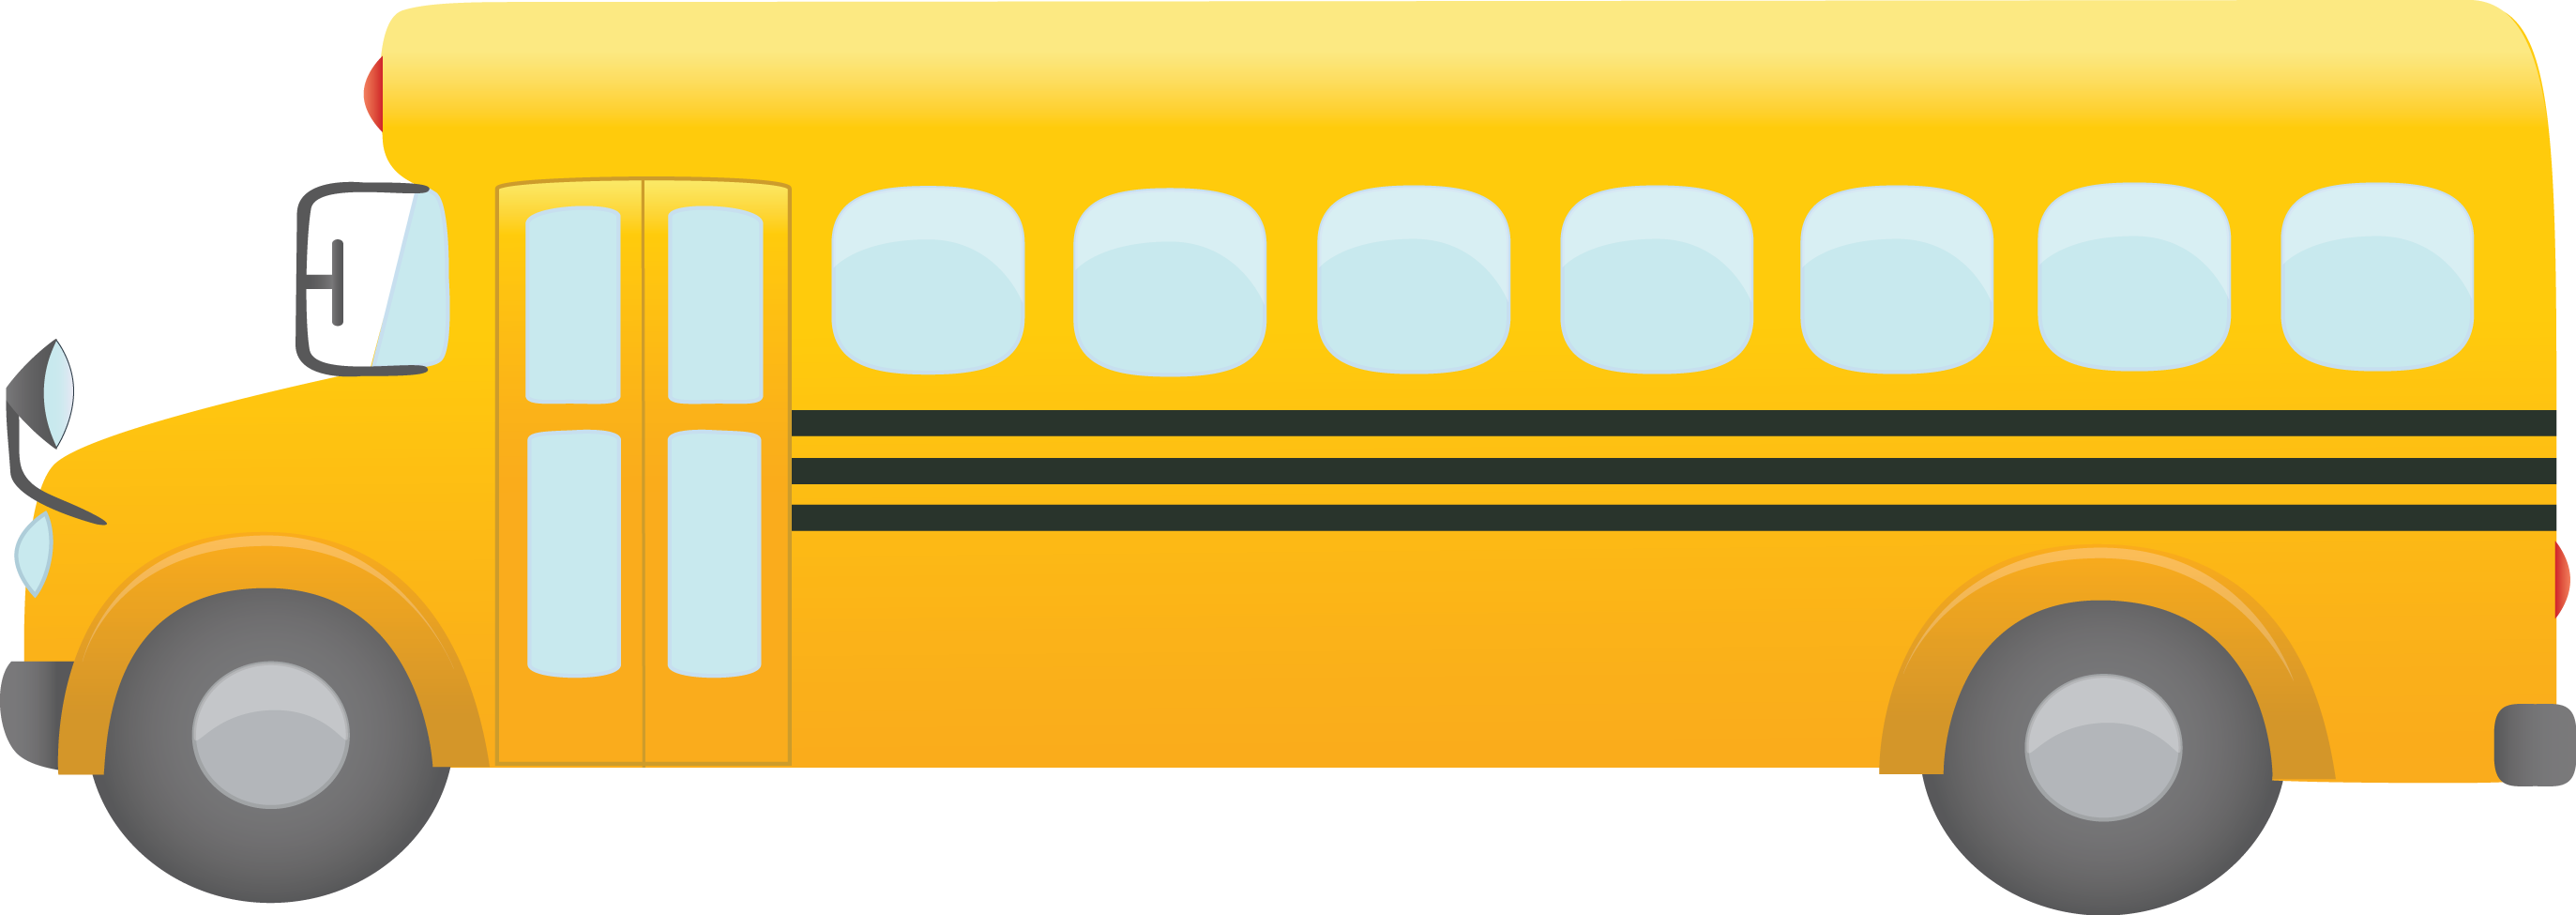 School bus clipart free clip royalty free library Bus Transparent PNG Pictures - Free Icons and PNG Backgrounds clip royalty free library